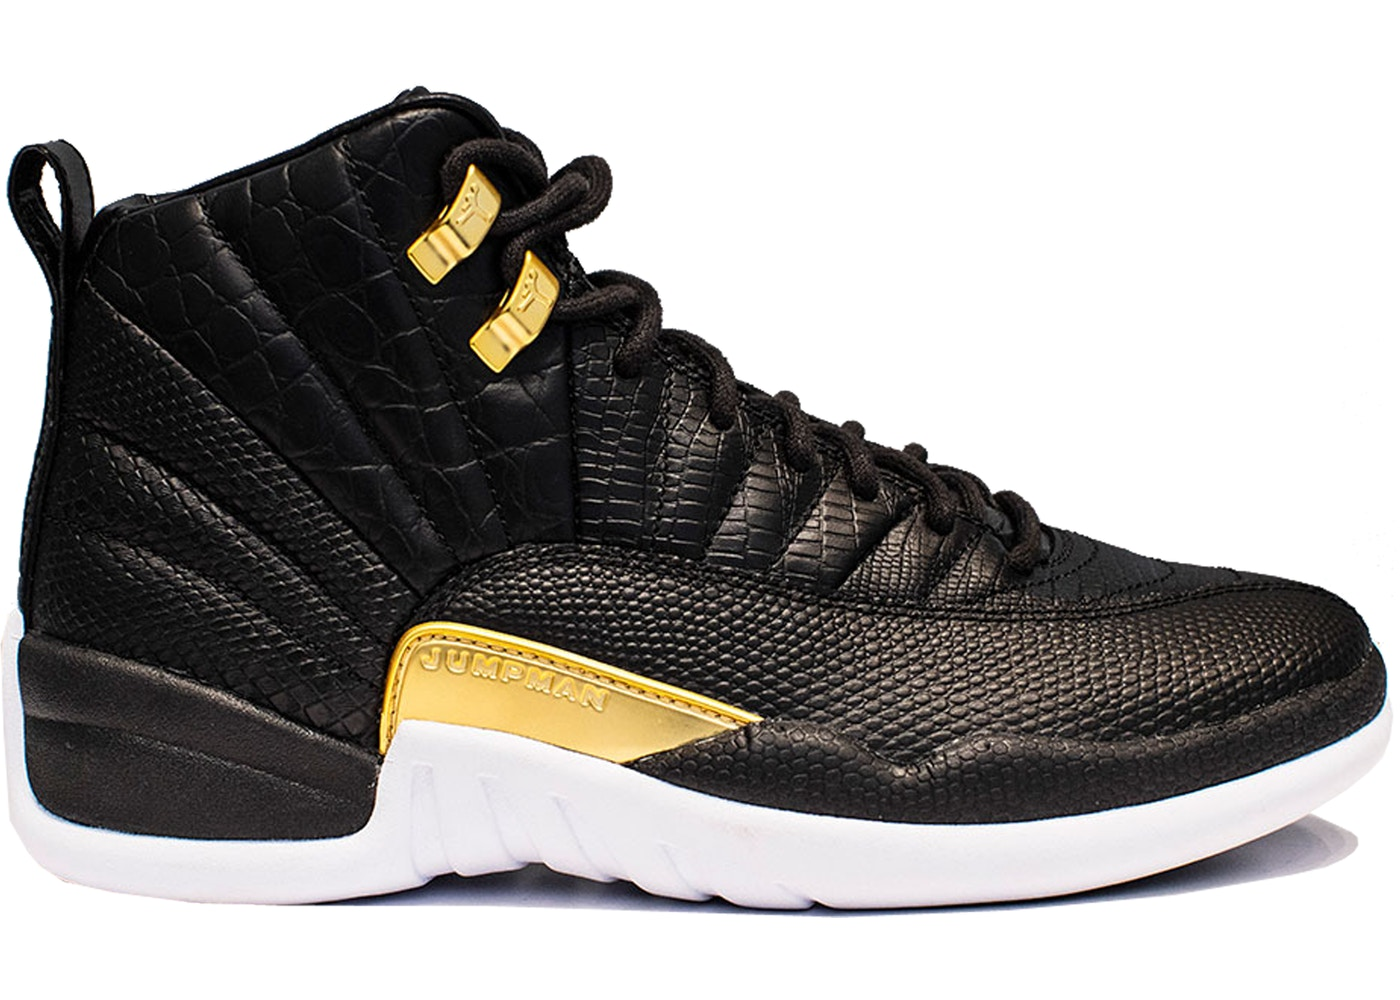 best loved ddbc4 c0f3f Jordan 12 Retro Black Metallic Gold White (W) - AO6068-007